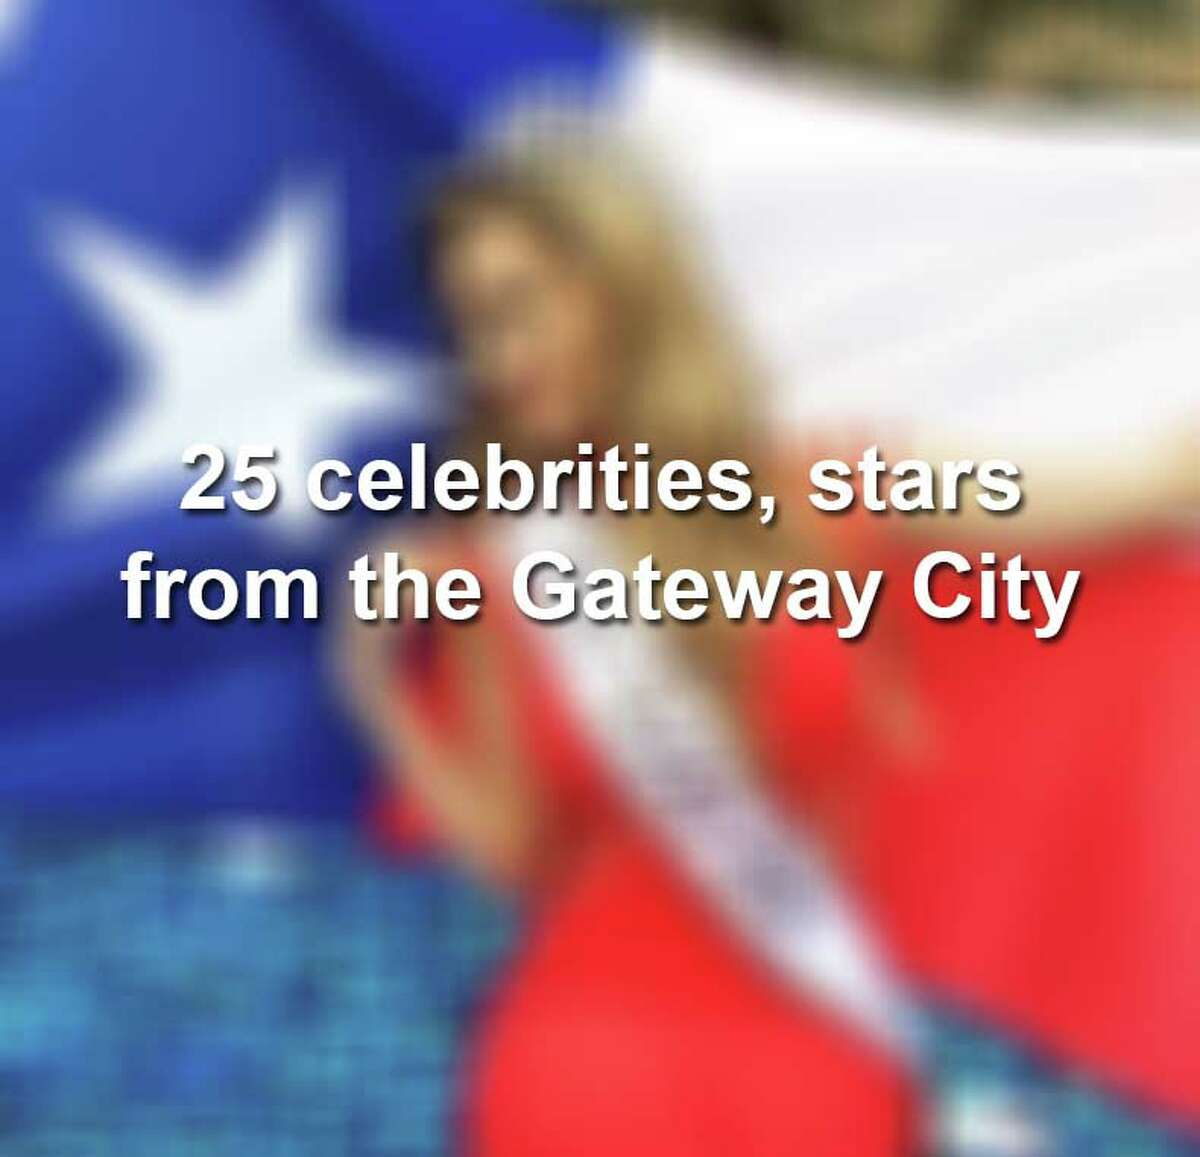 Keep scrolling to see famous musicians, actors, athletes and more celebrities from Laredo.